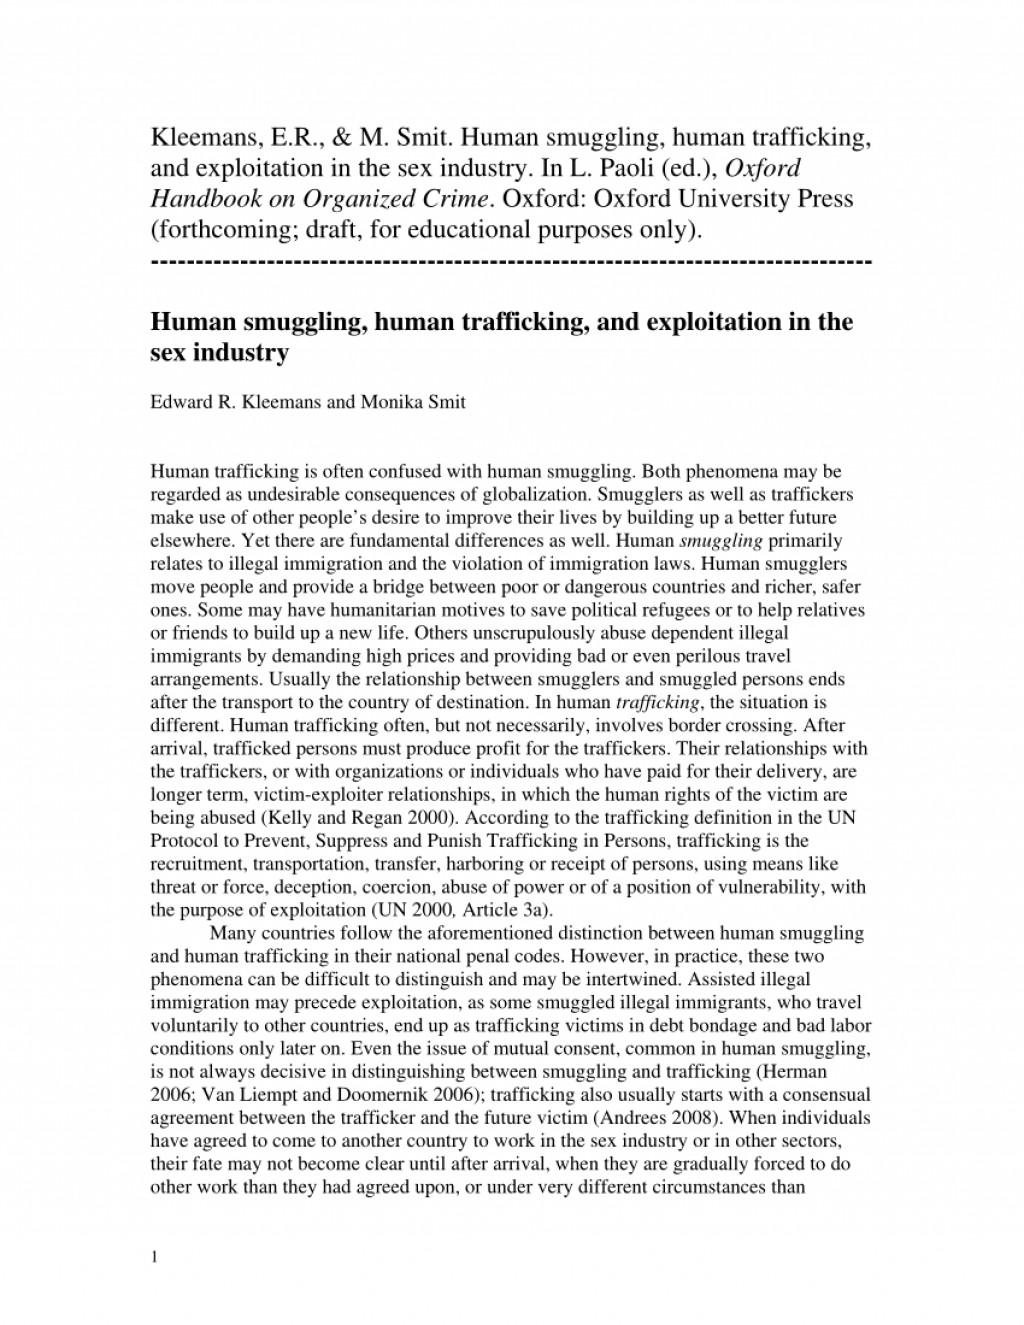 007 Research Paper Human Trafficking Proposal Fearsome Large